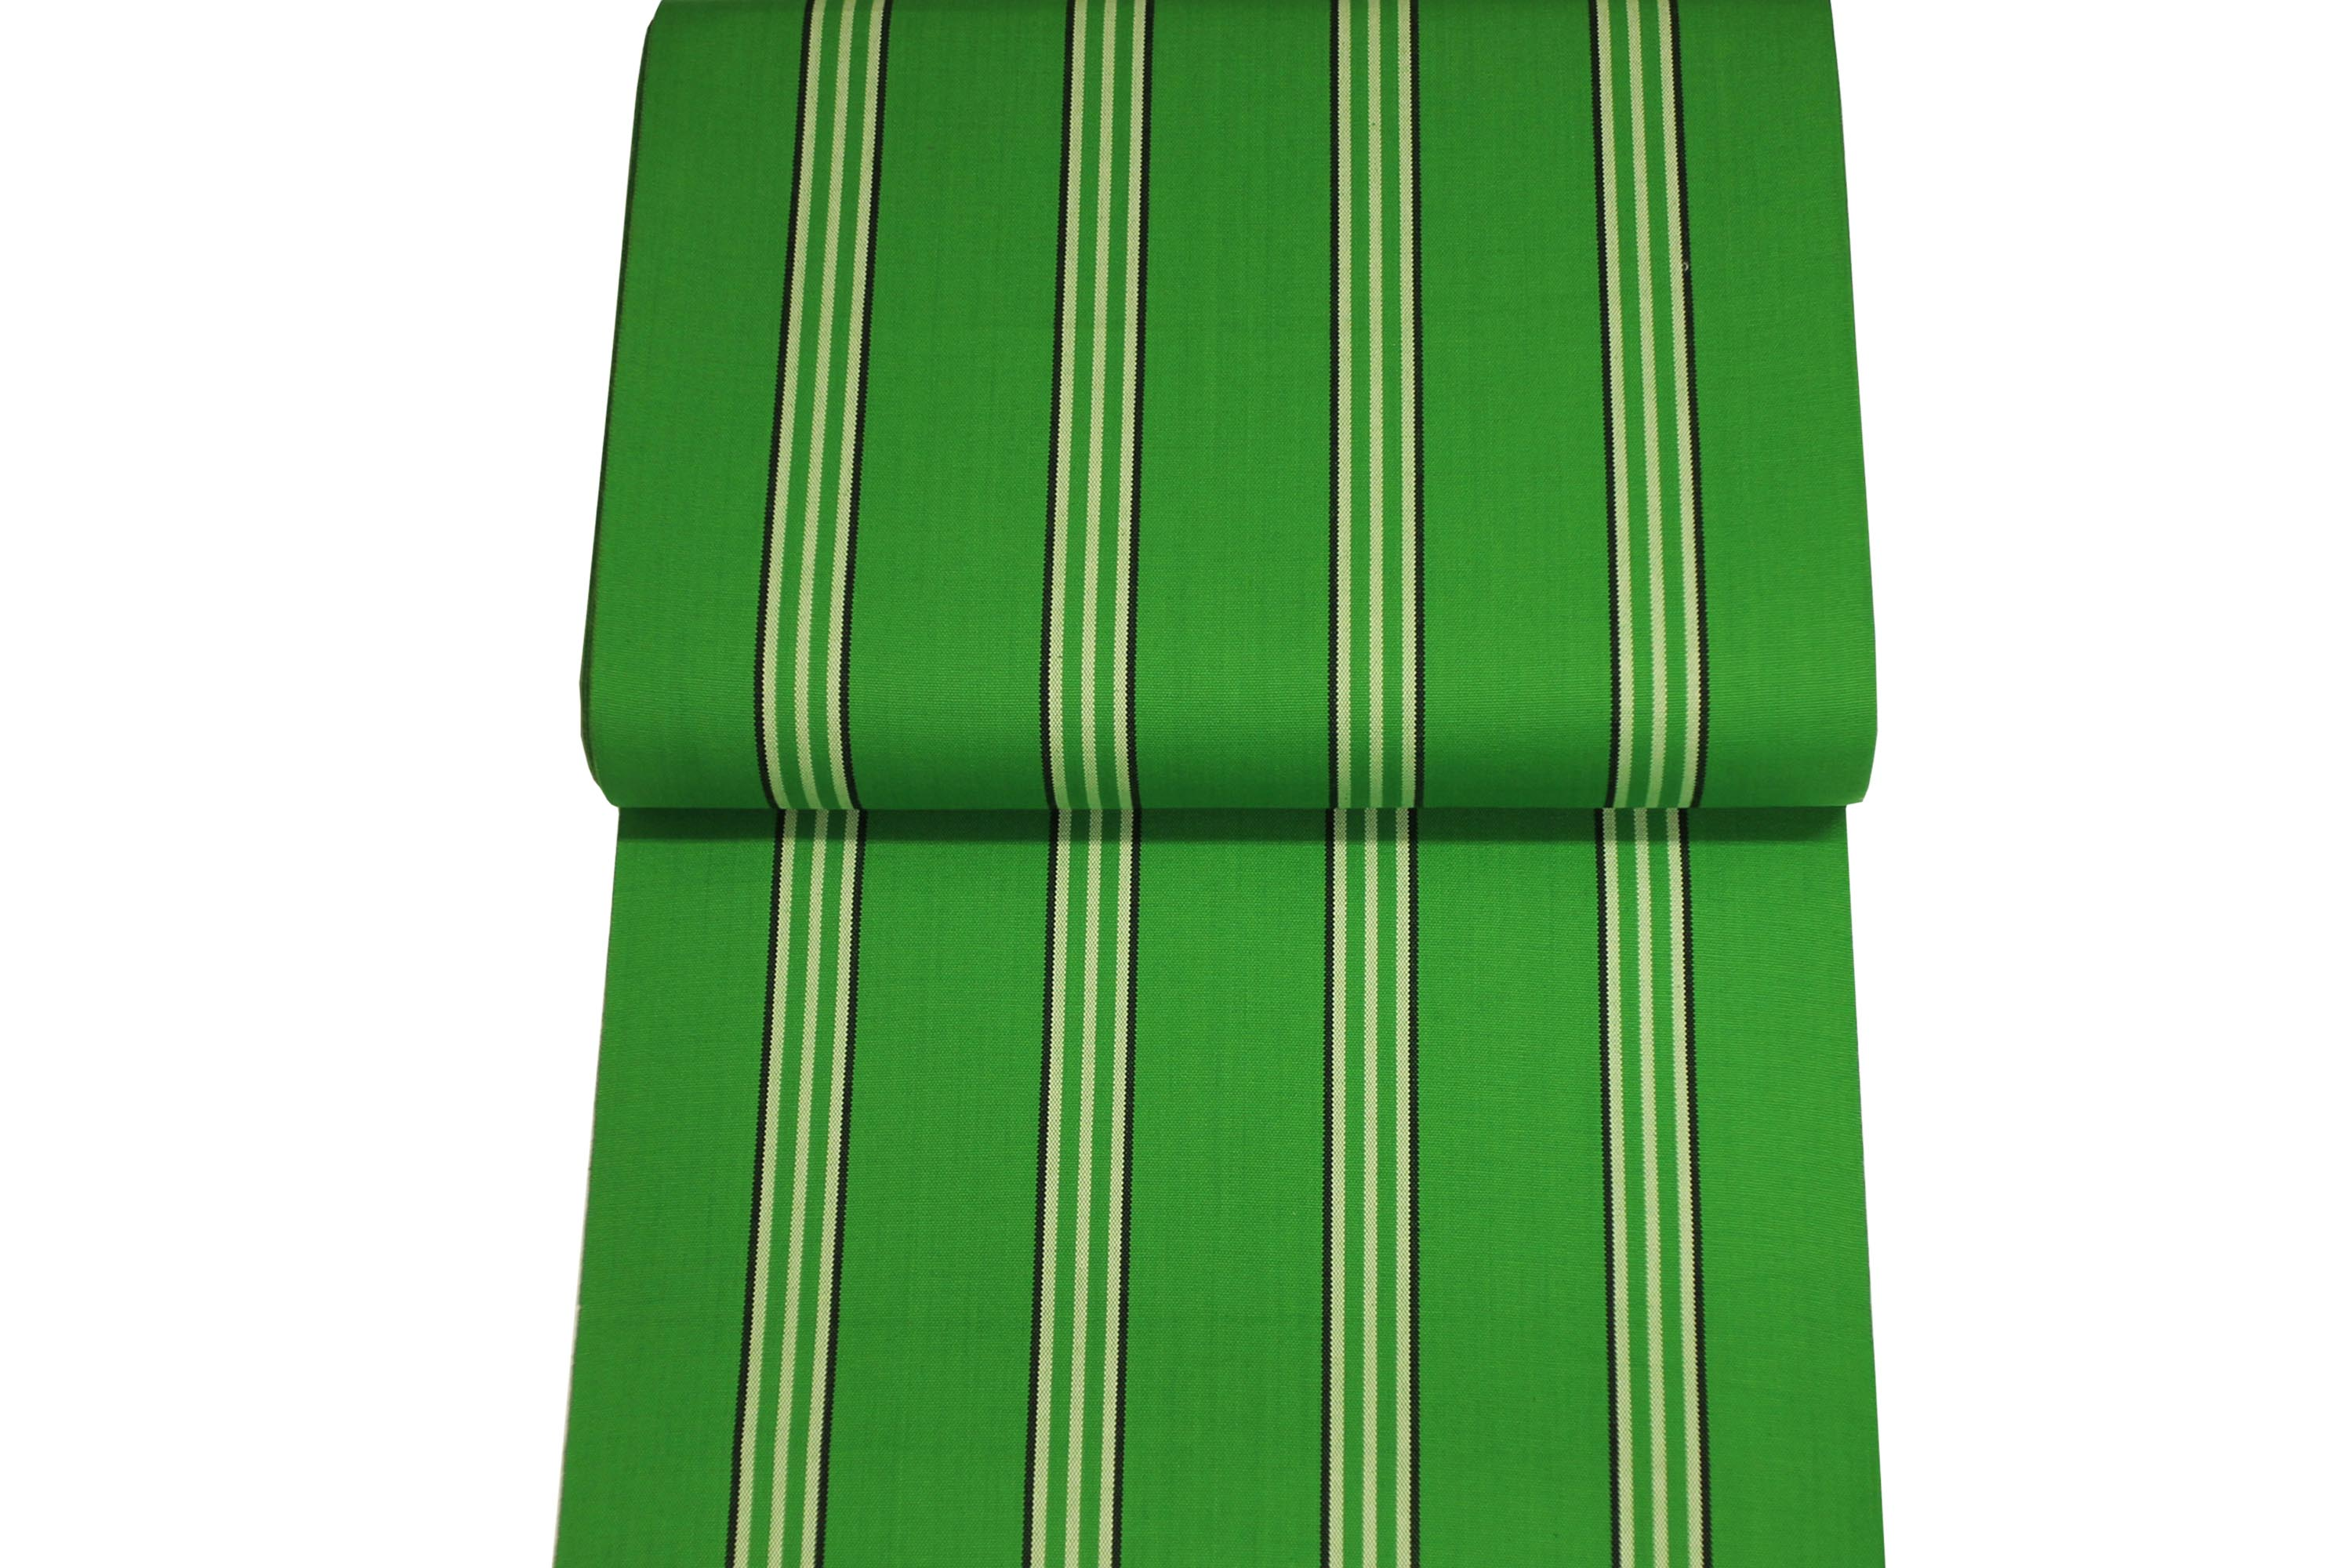 Emerald Green Directors Chair Covers | Replacement Director Chair Covers